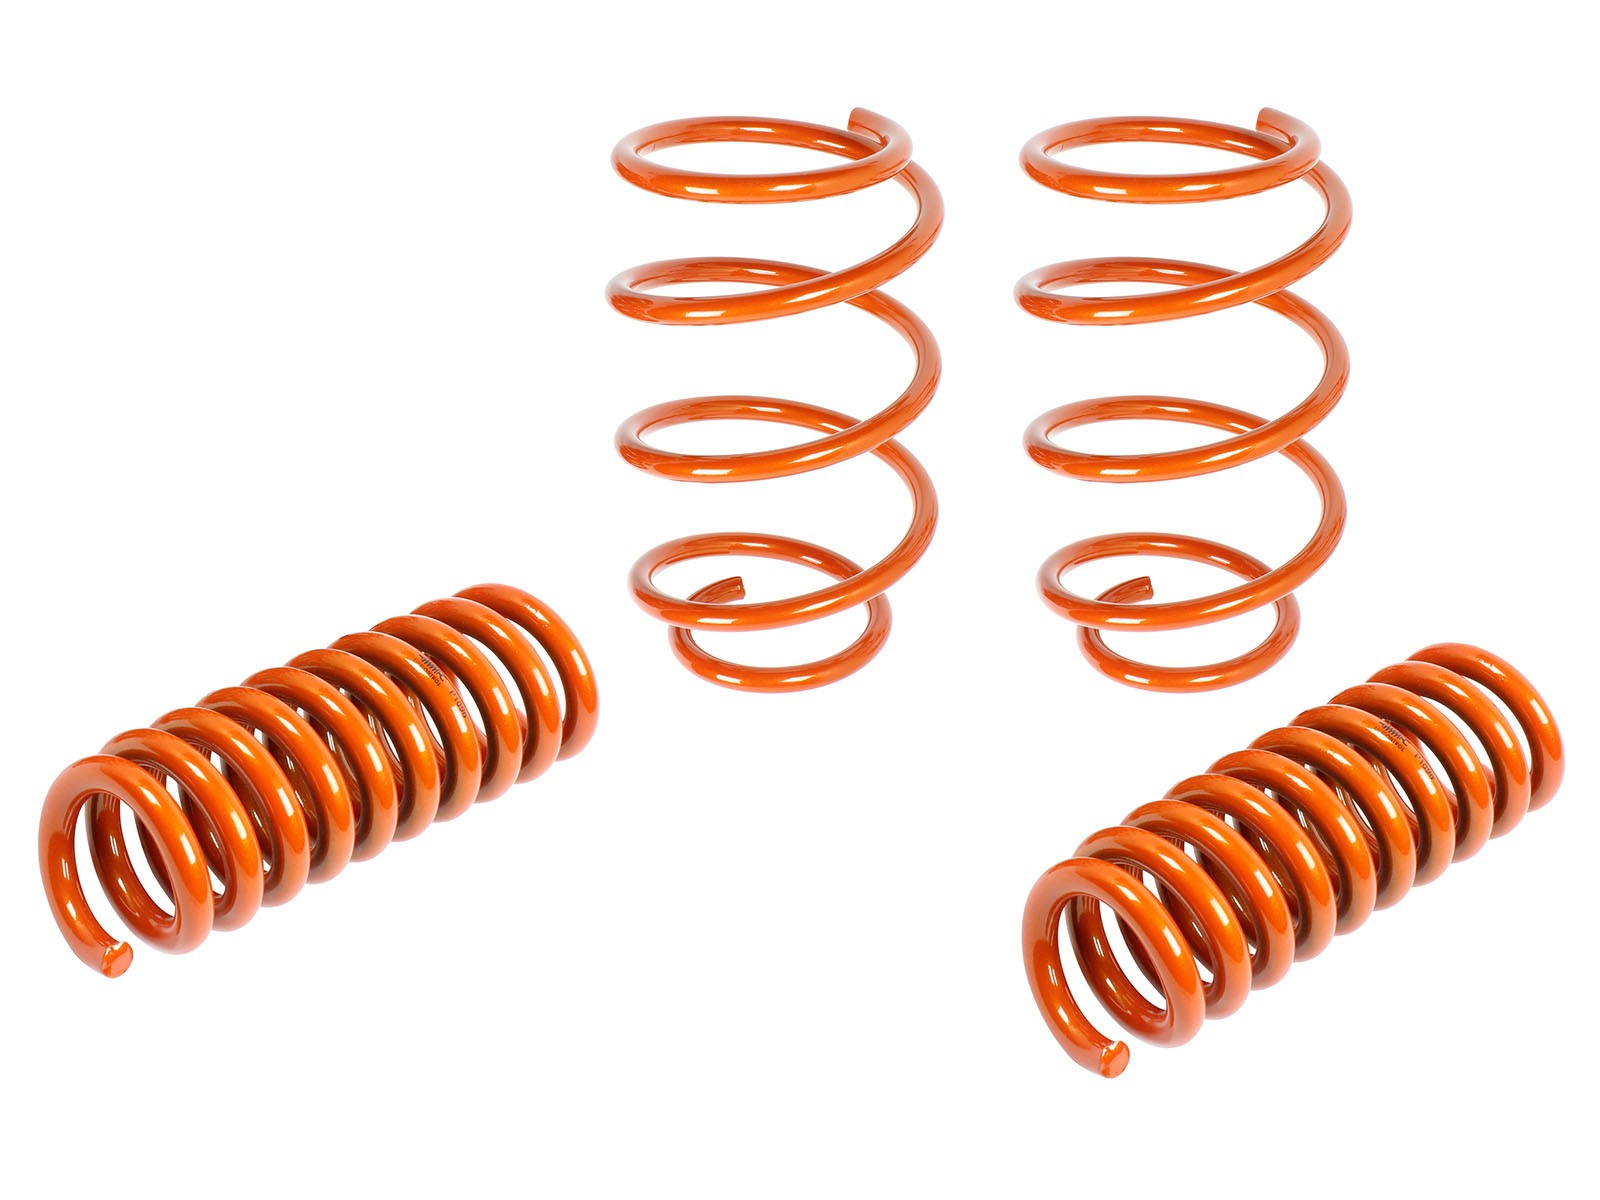 aFe Control Lowering Springs 2016 Chevy Camaro 6.2L V8